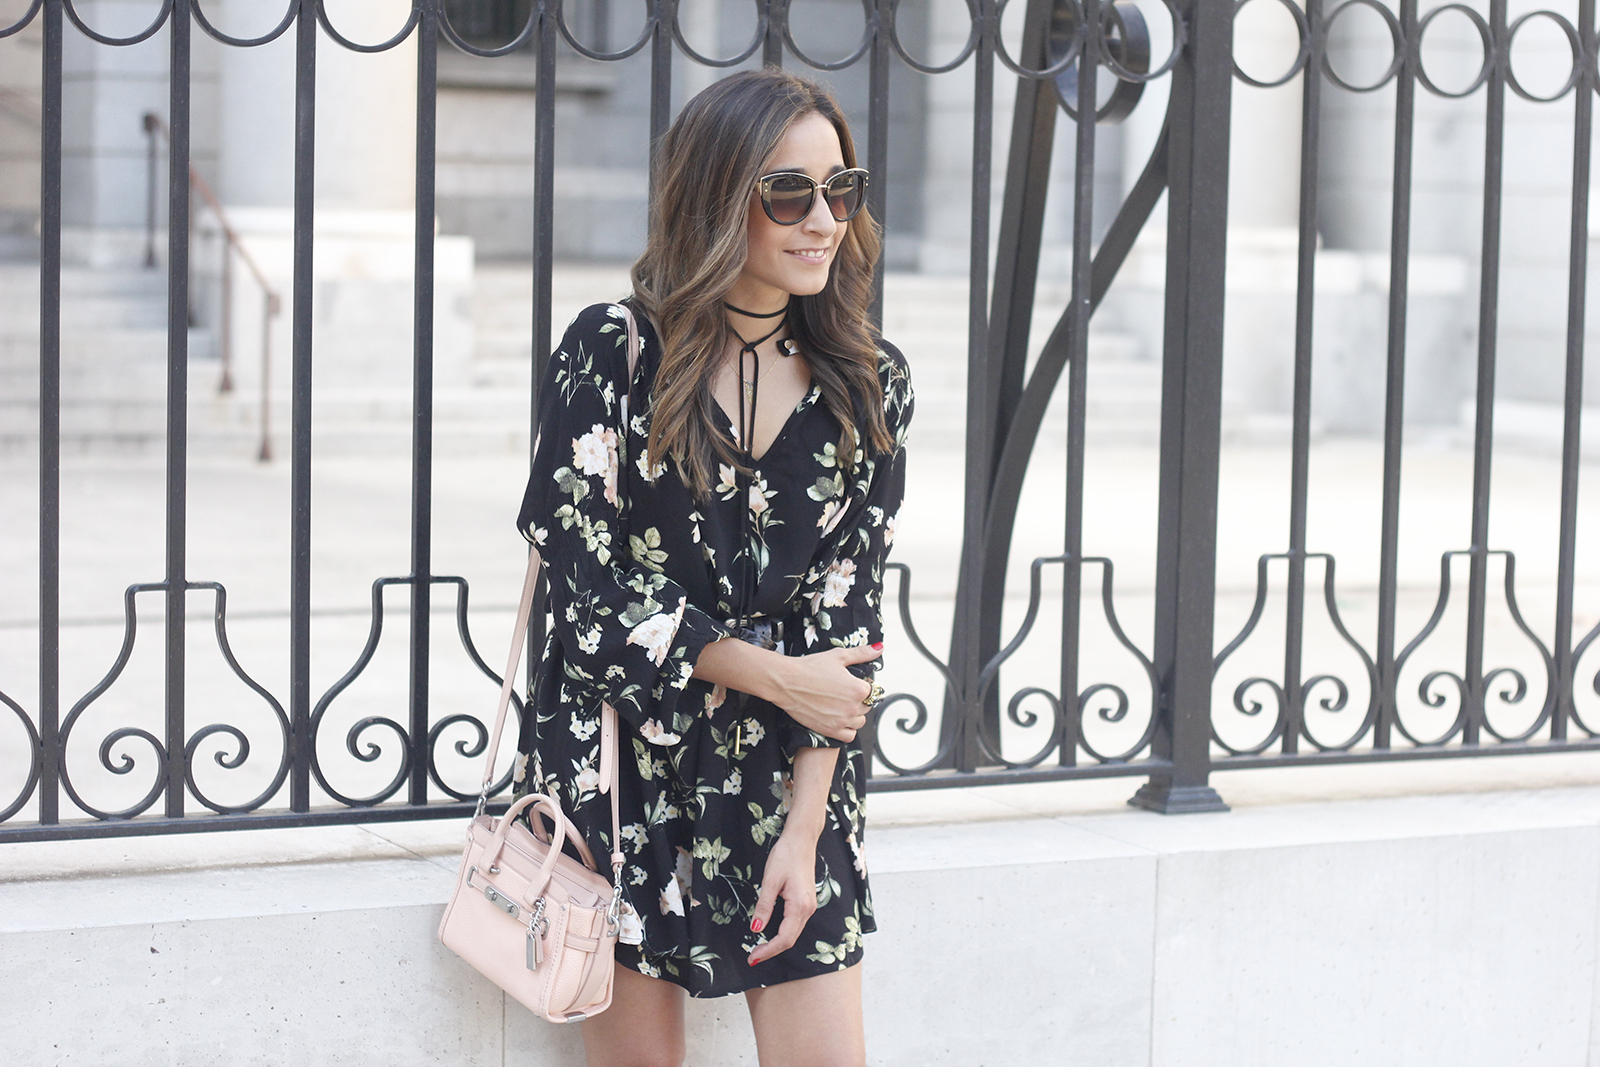 boho black dress with floral print hat coach bag wedges summer outfit09